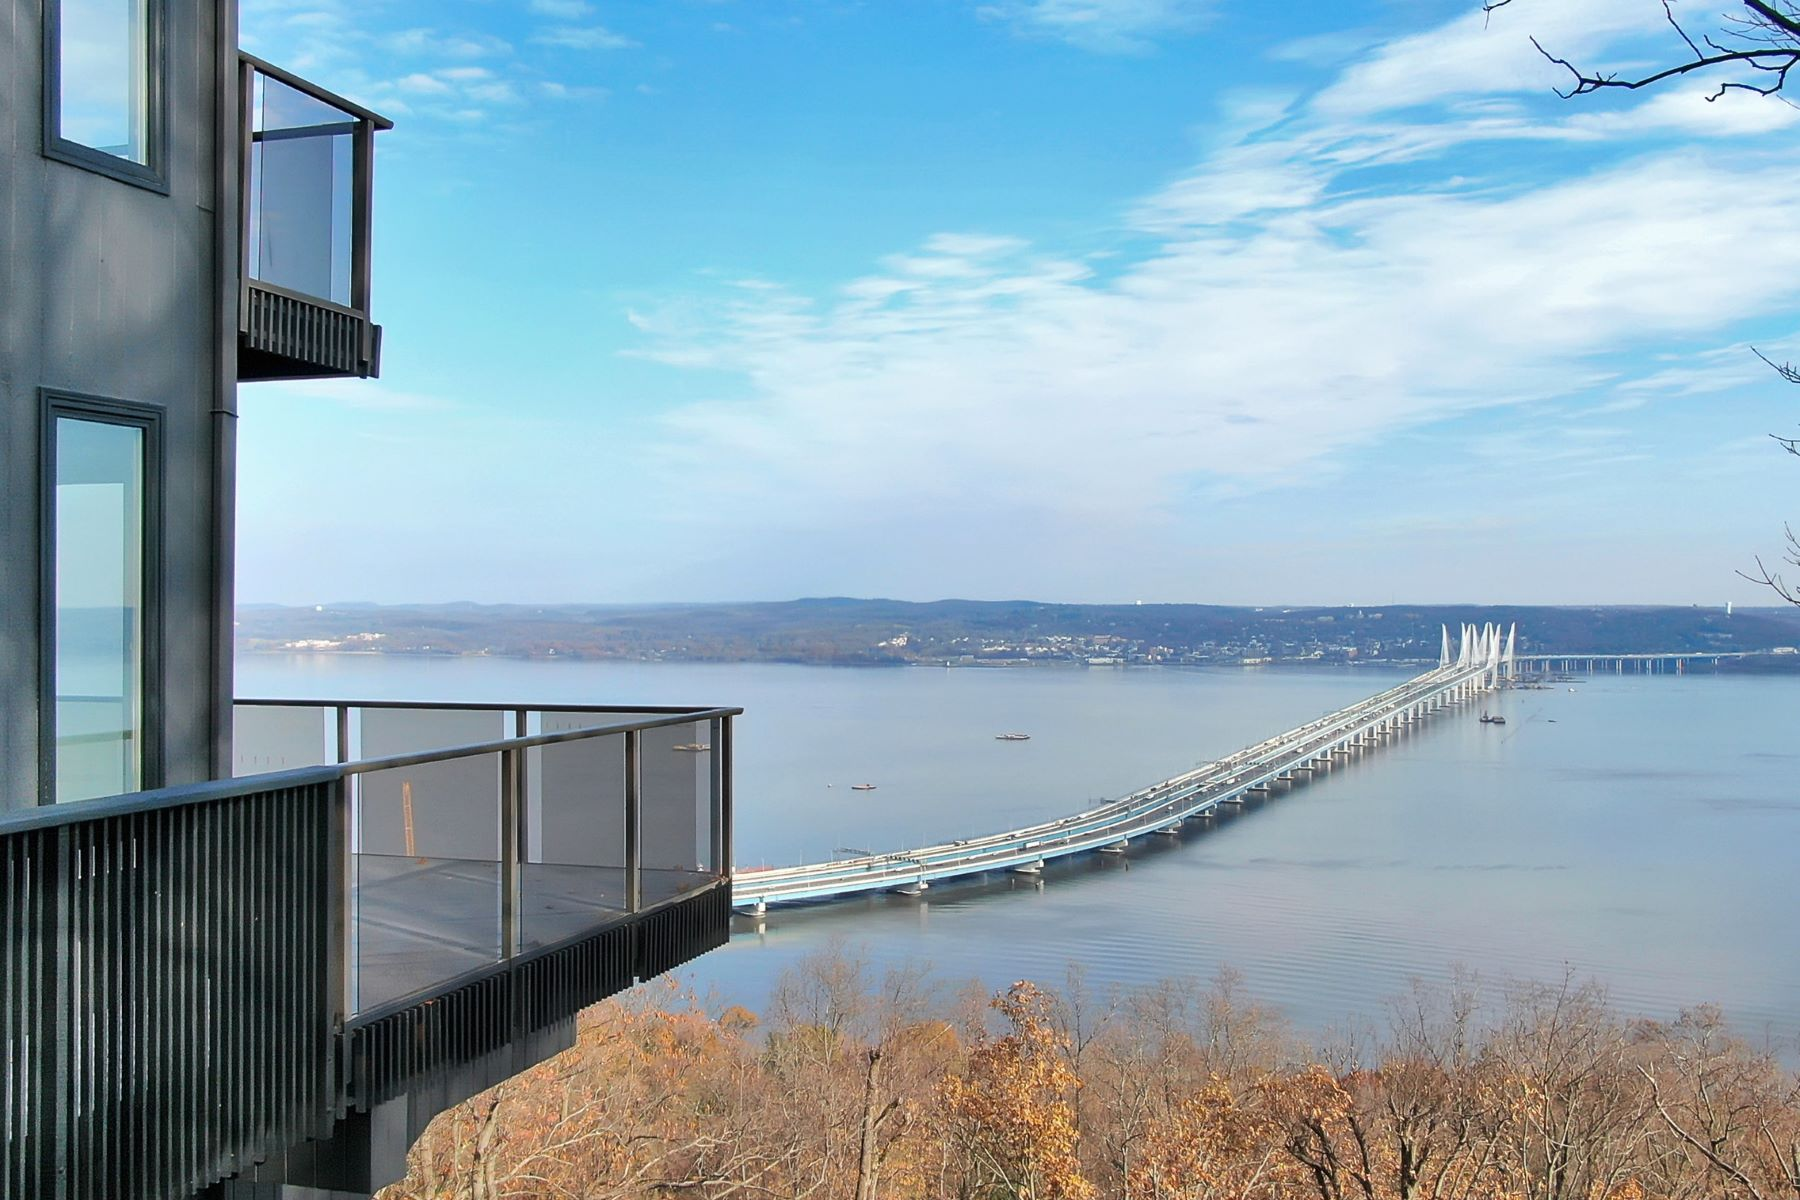 Single Family Homes for Sale at Inspirational Living with Hudson River Views 15 Tweed Blvd. Upper Grandview, New York 10960 United States